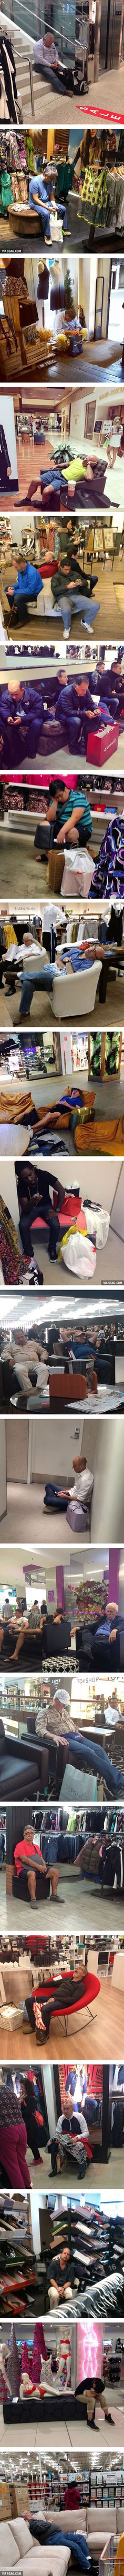 Photos of Miserable Men Trapped In Shopping Hell